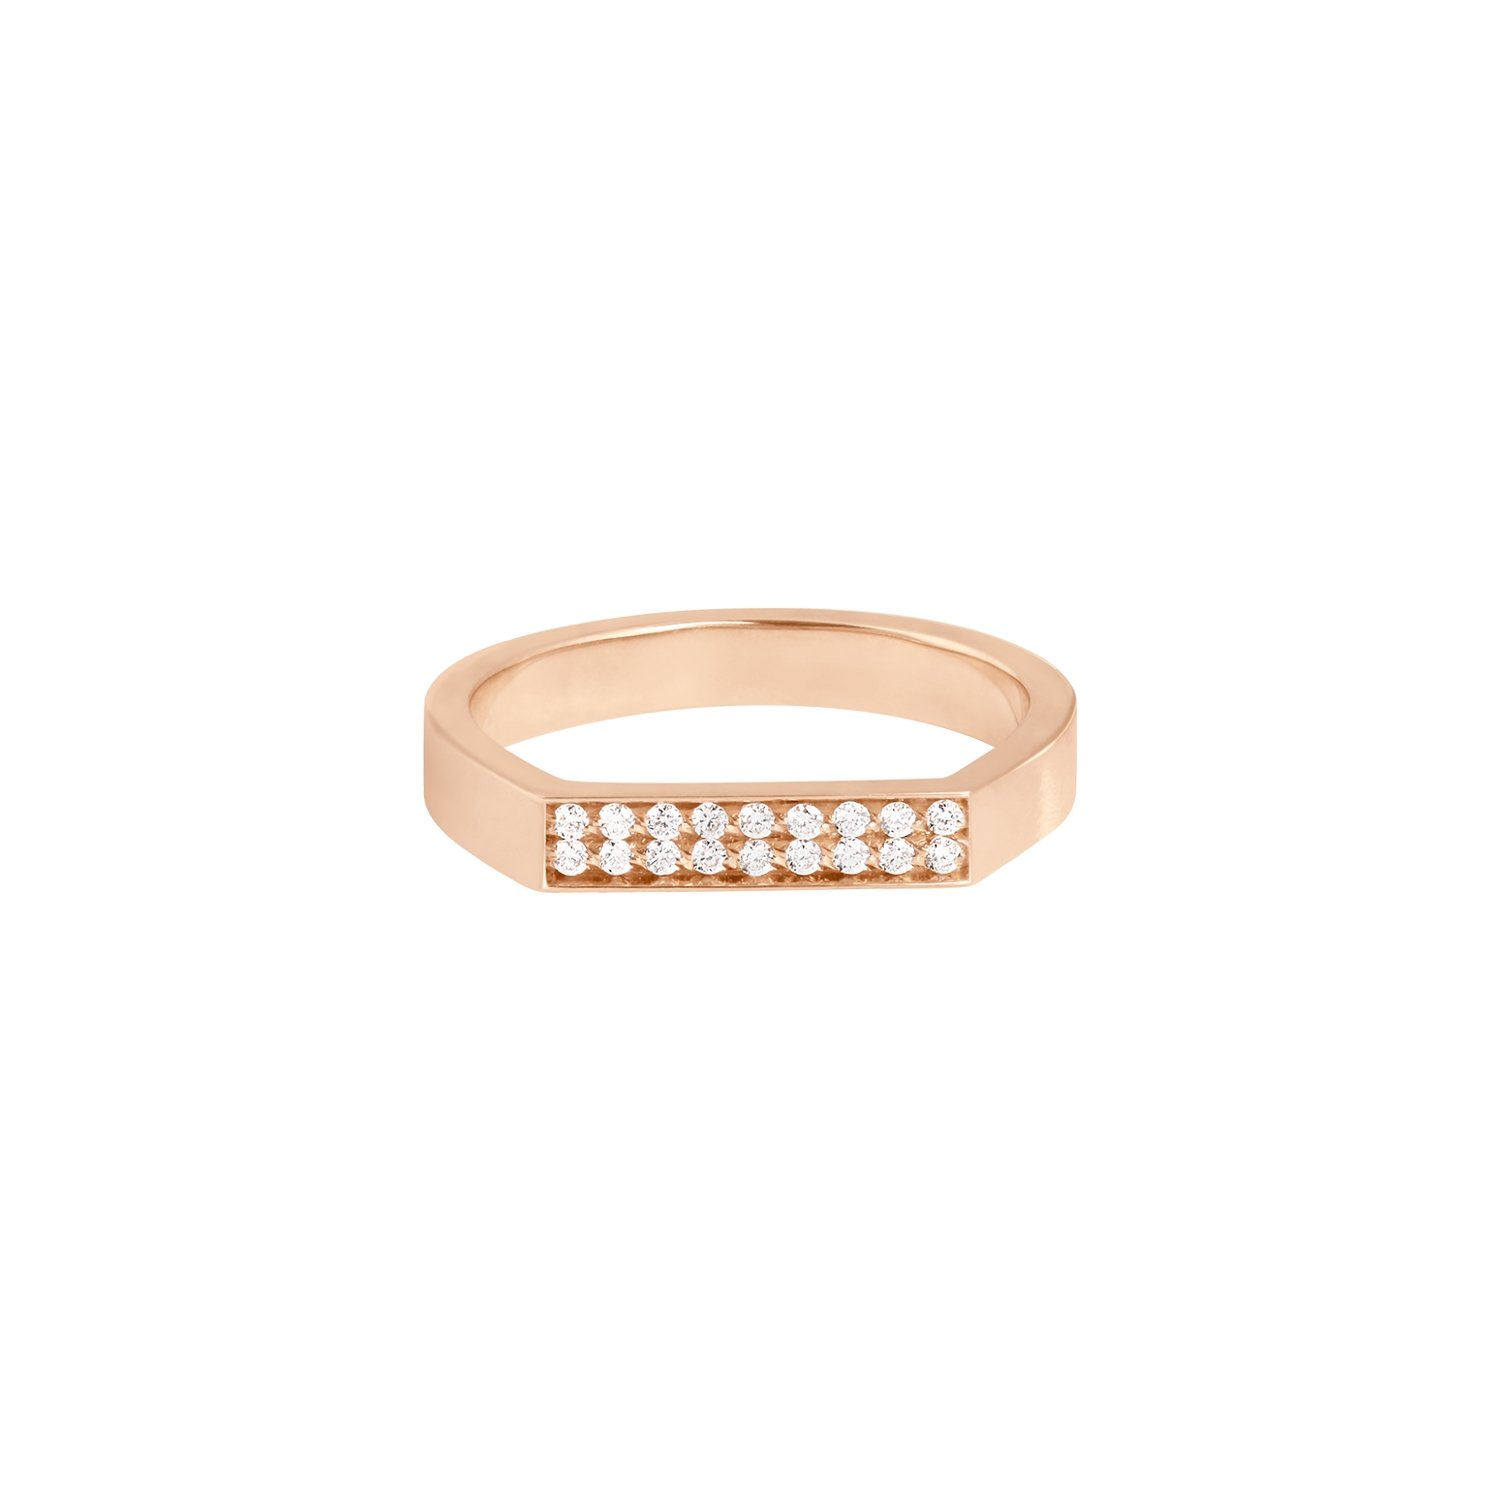 Bague Vanrycke Bonnie & Clyde en or rose et 18 diamants vue 1